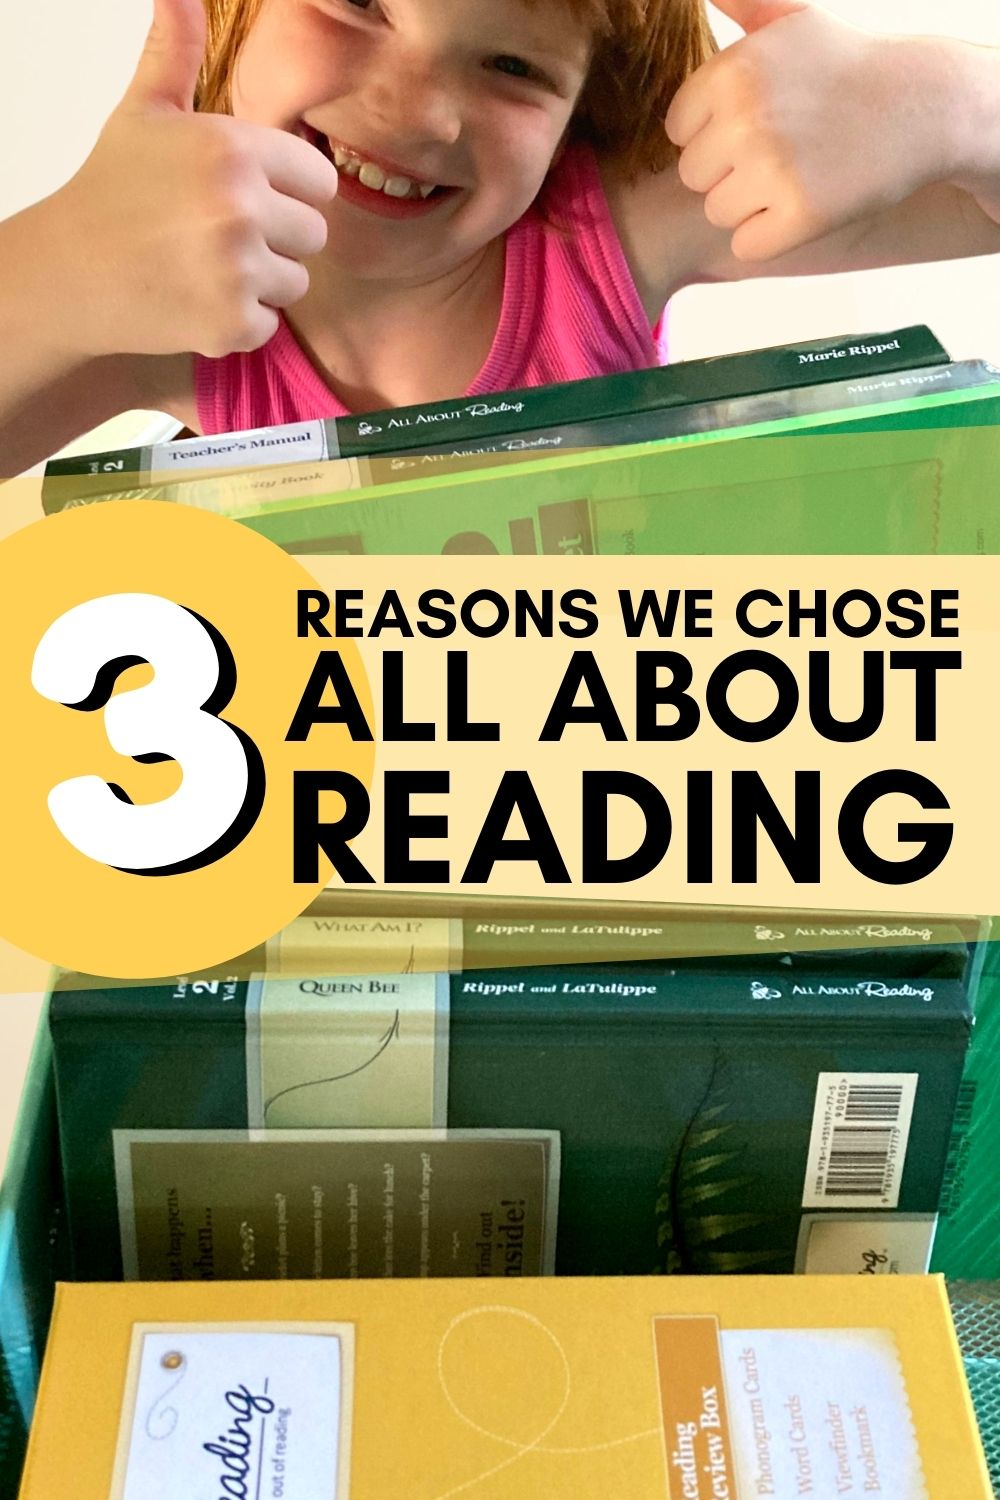 3 reasons we chose All About Reading for learning to read. An Orton-Gillingham based program with open-and-go, short, hands-on lessons. #homeschooling #reading #curriculum